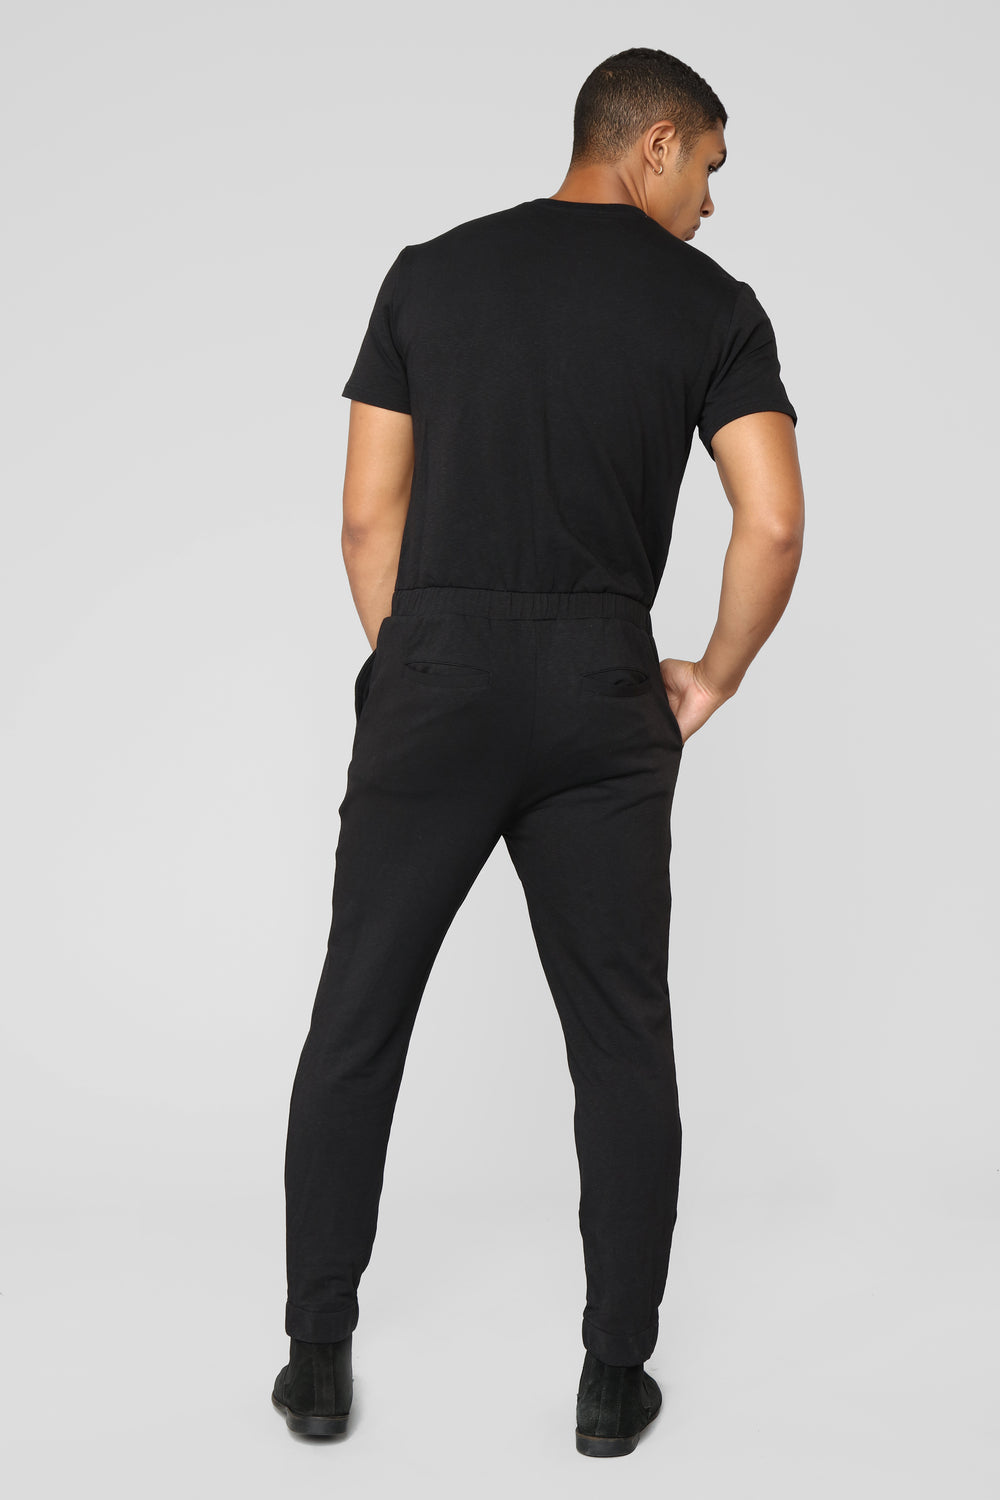 Springs Party Suit - Black